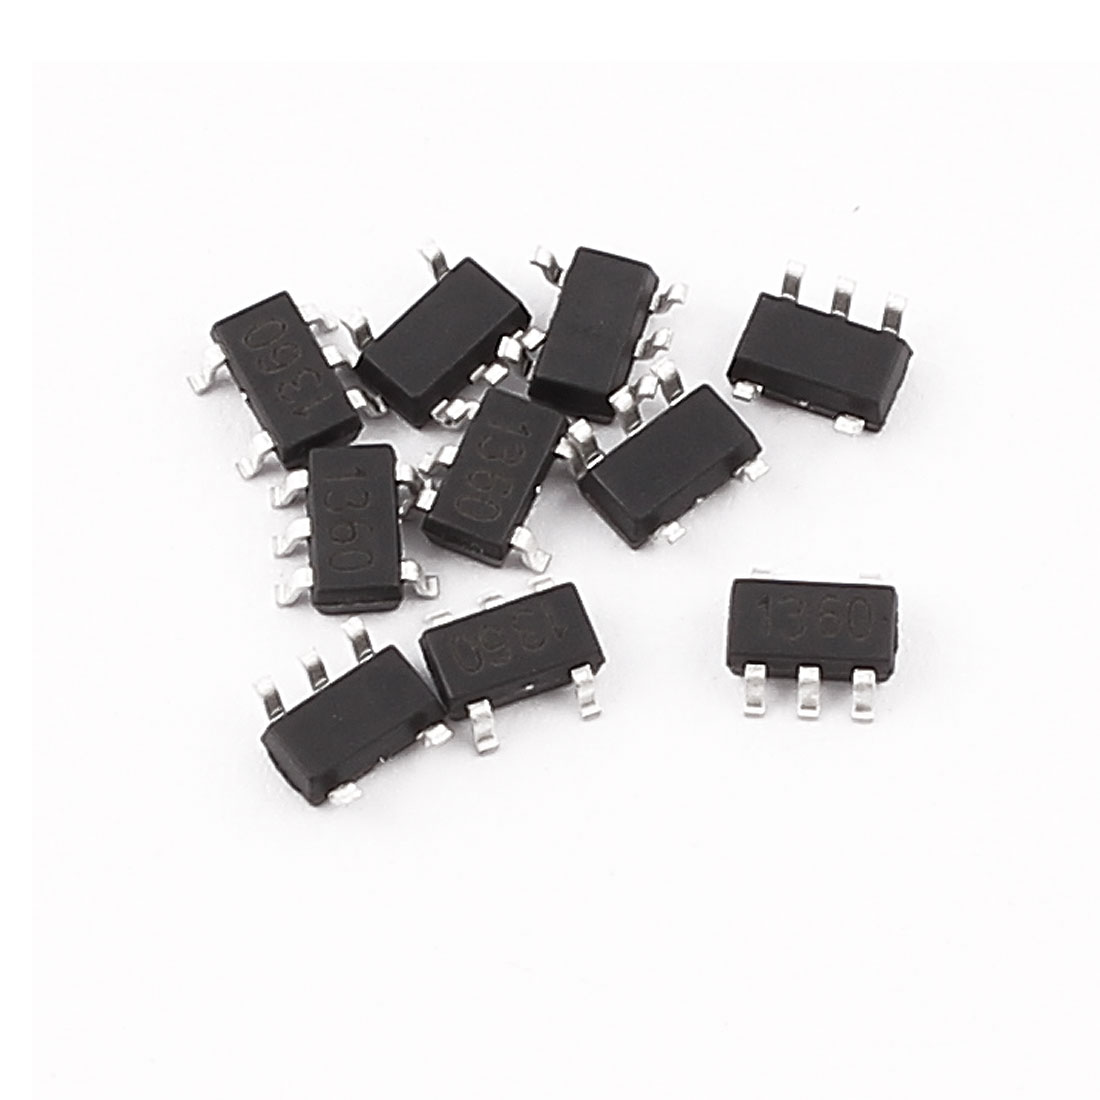 10Pcs BP1360 SOP-5 SMD SMT Type PCB Surface Mount LED Driver Circuit Module Integrated Circuit IC Chip